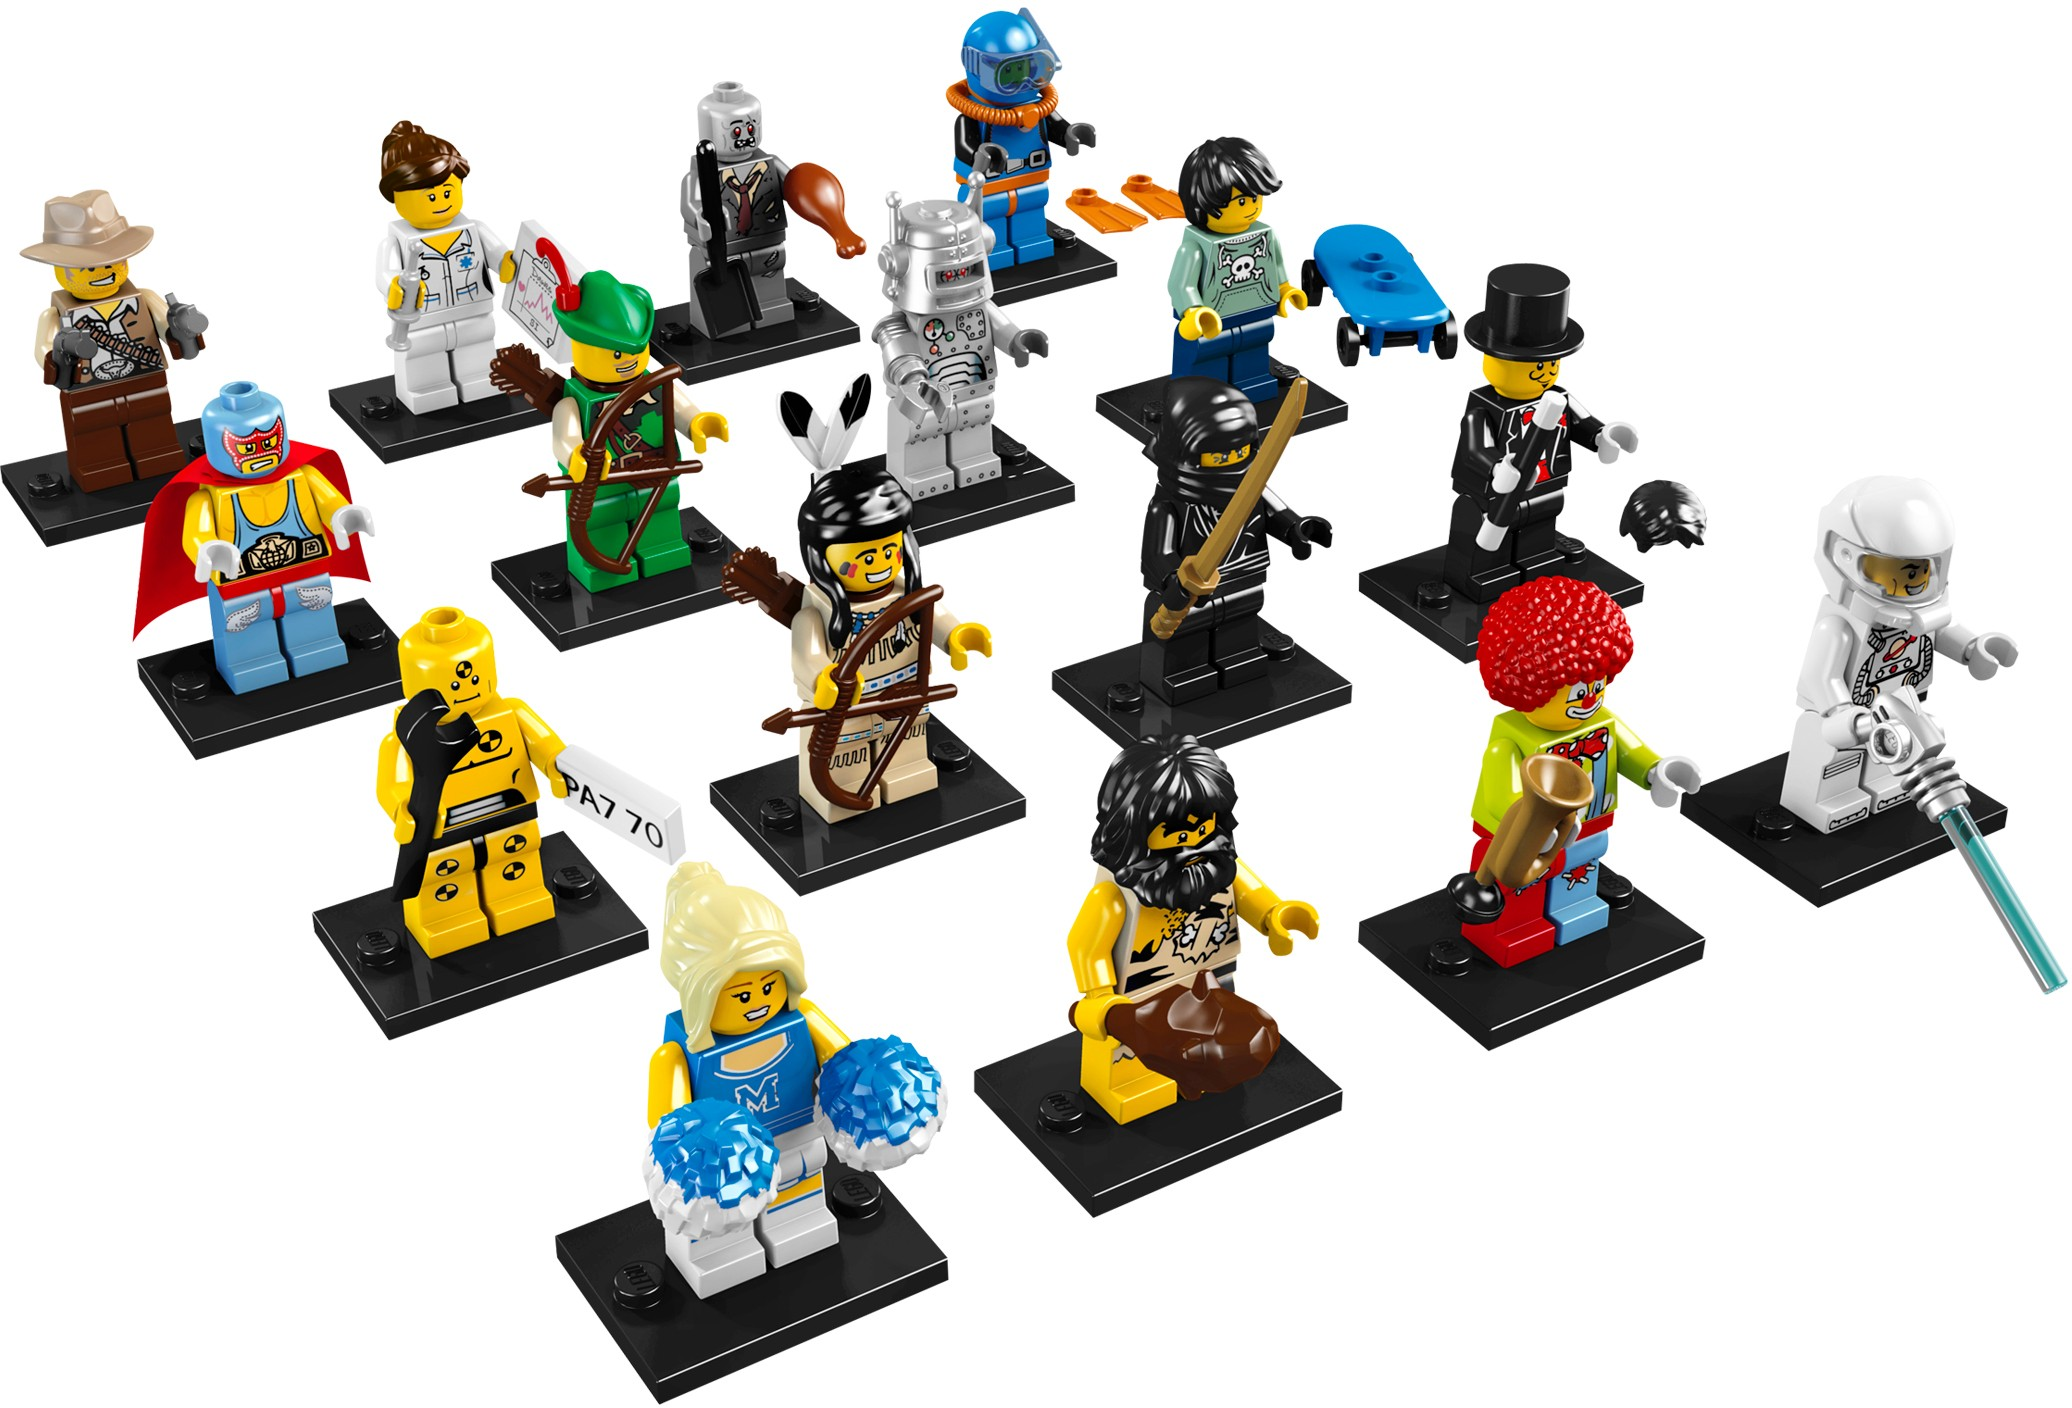 Collectable Minifigures | Brickset: LEGO set guide and database